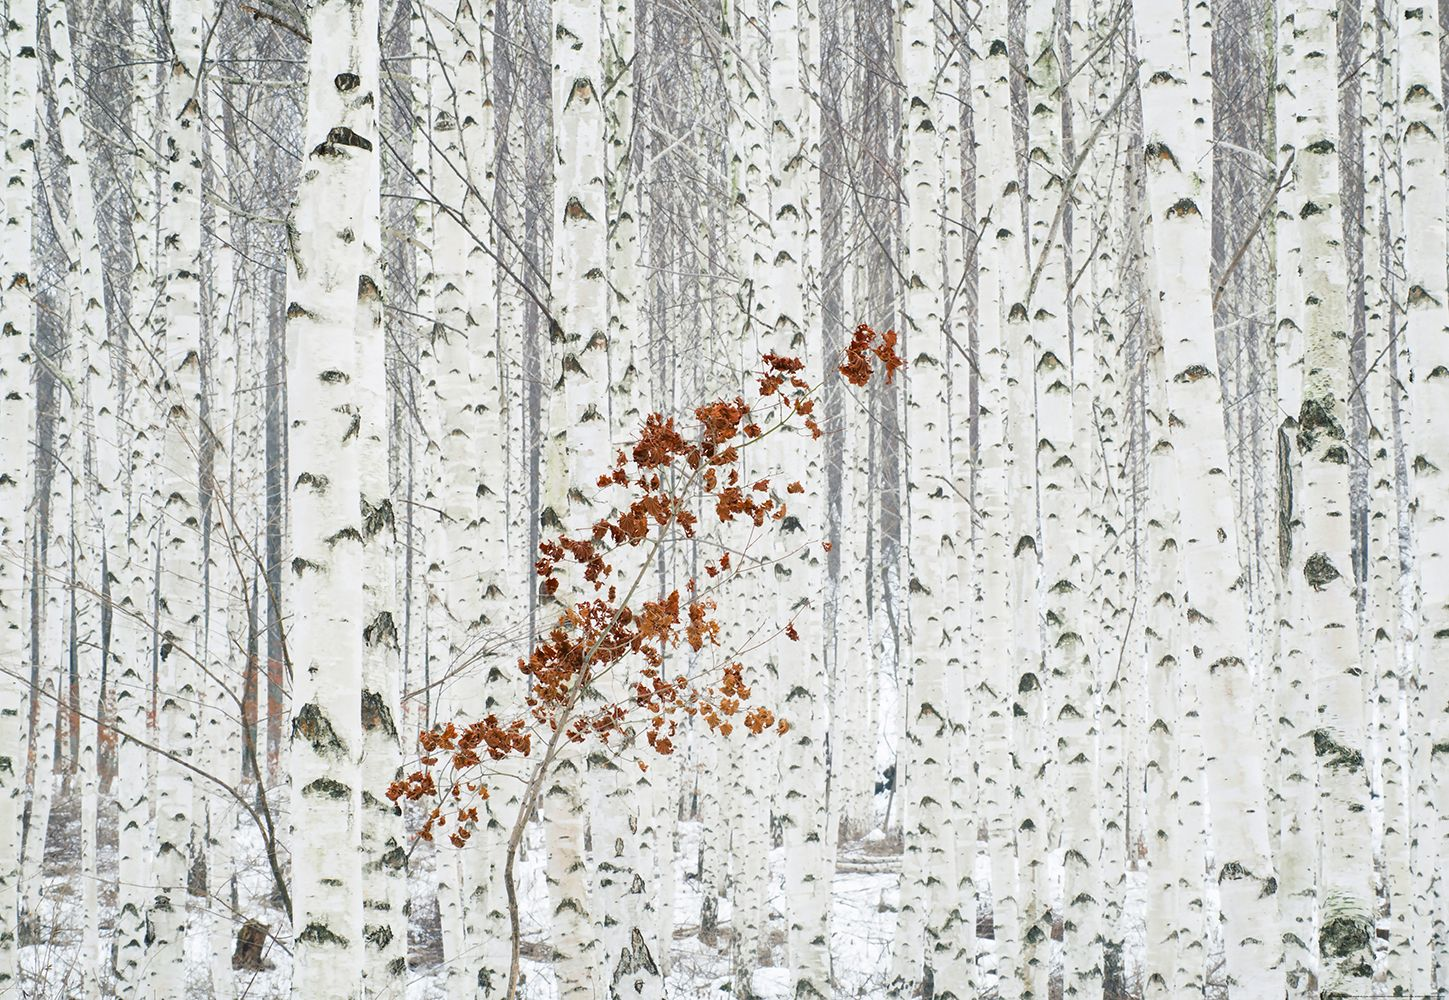 Valokuvatapetti Idealdecor Digital White Birch Forest 4-osaa 5104-4V-1 254x368 cm